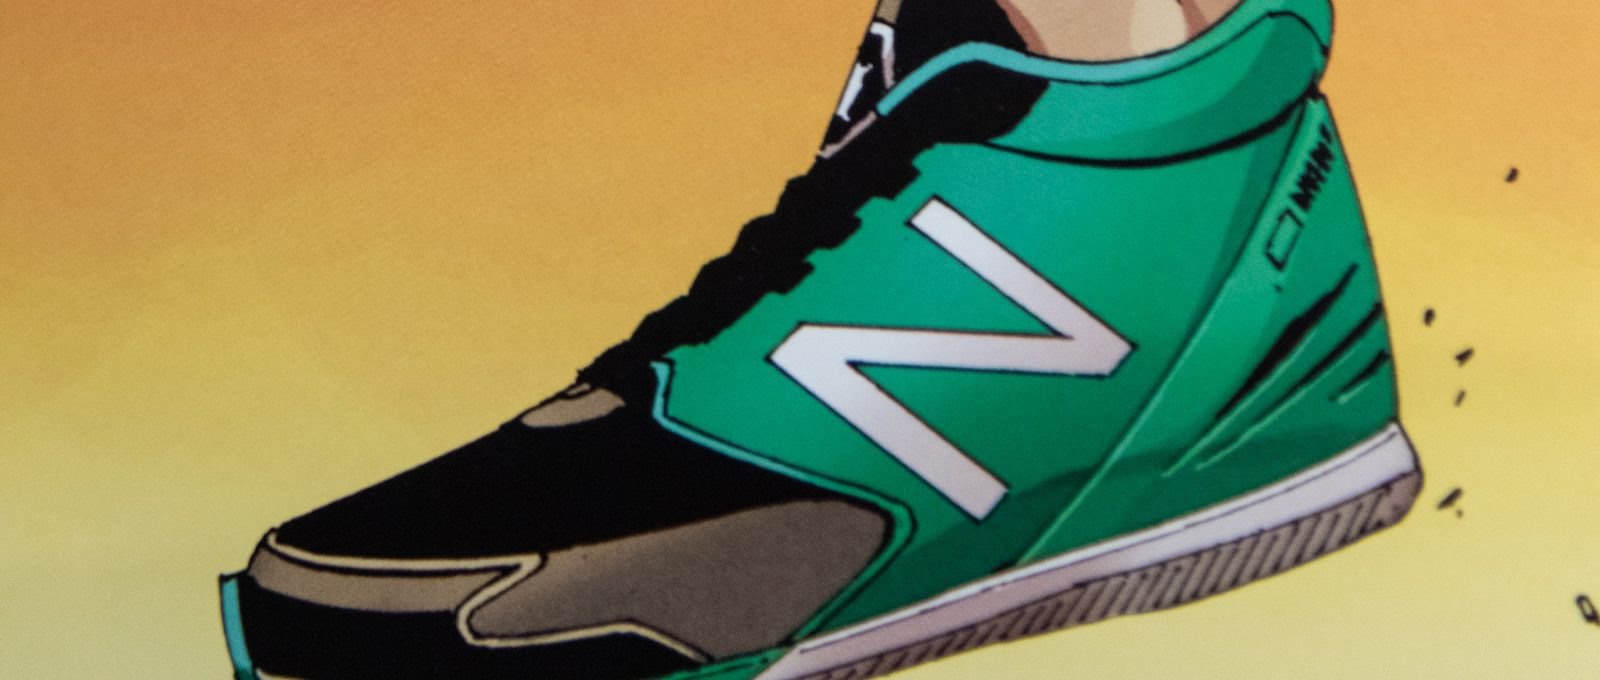 Discover what happened at The Greatest Race presentation, the manga that pays homage to NB Hanzo v2